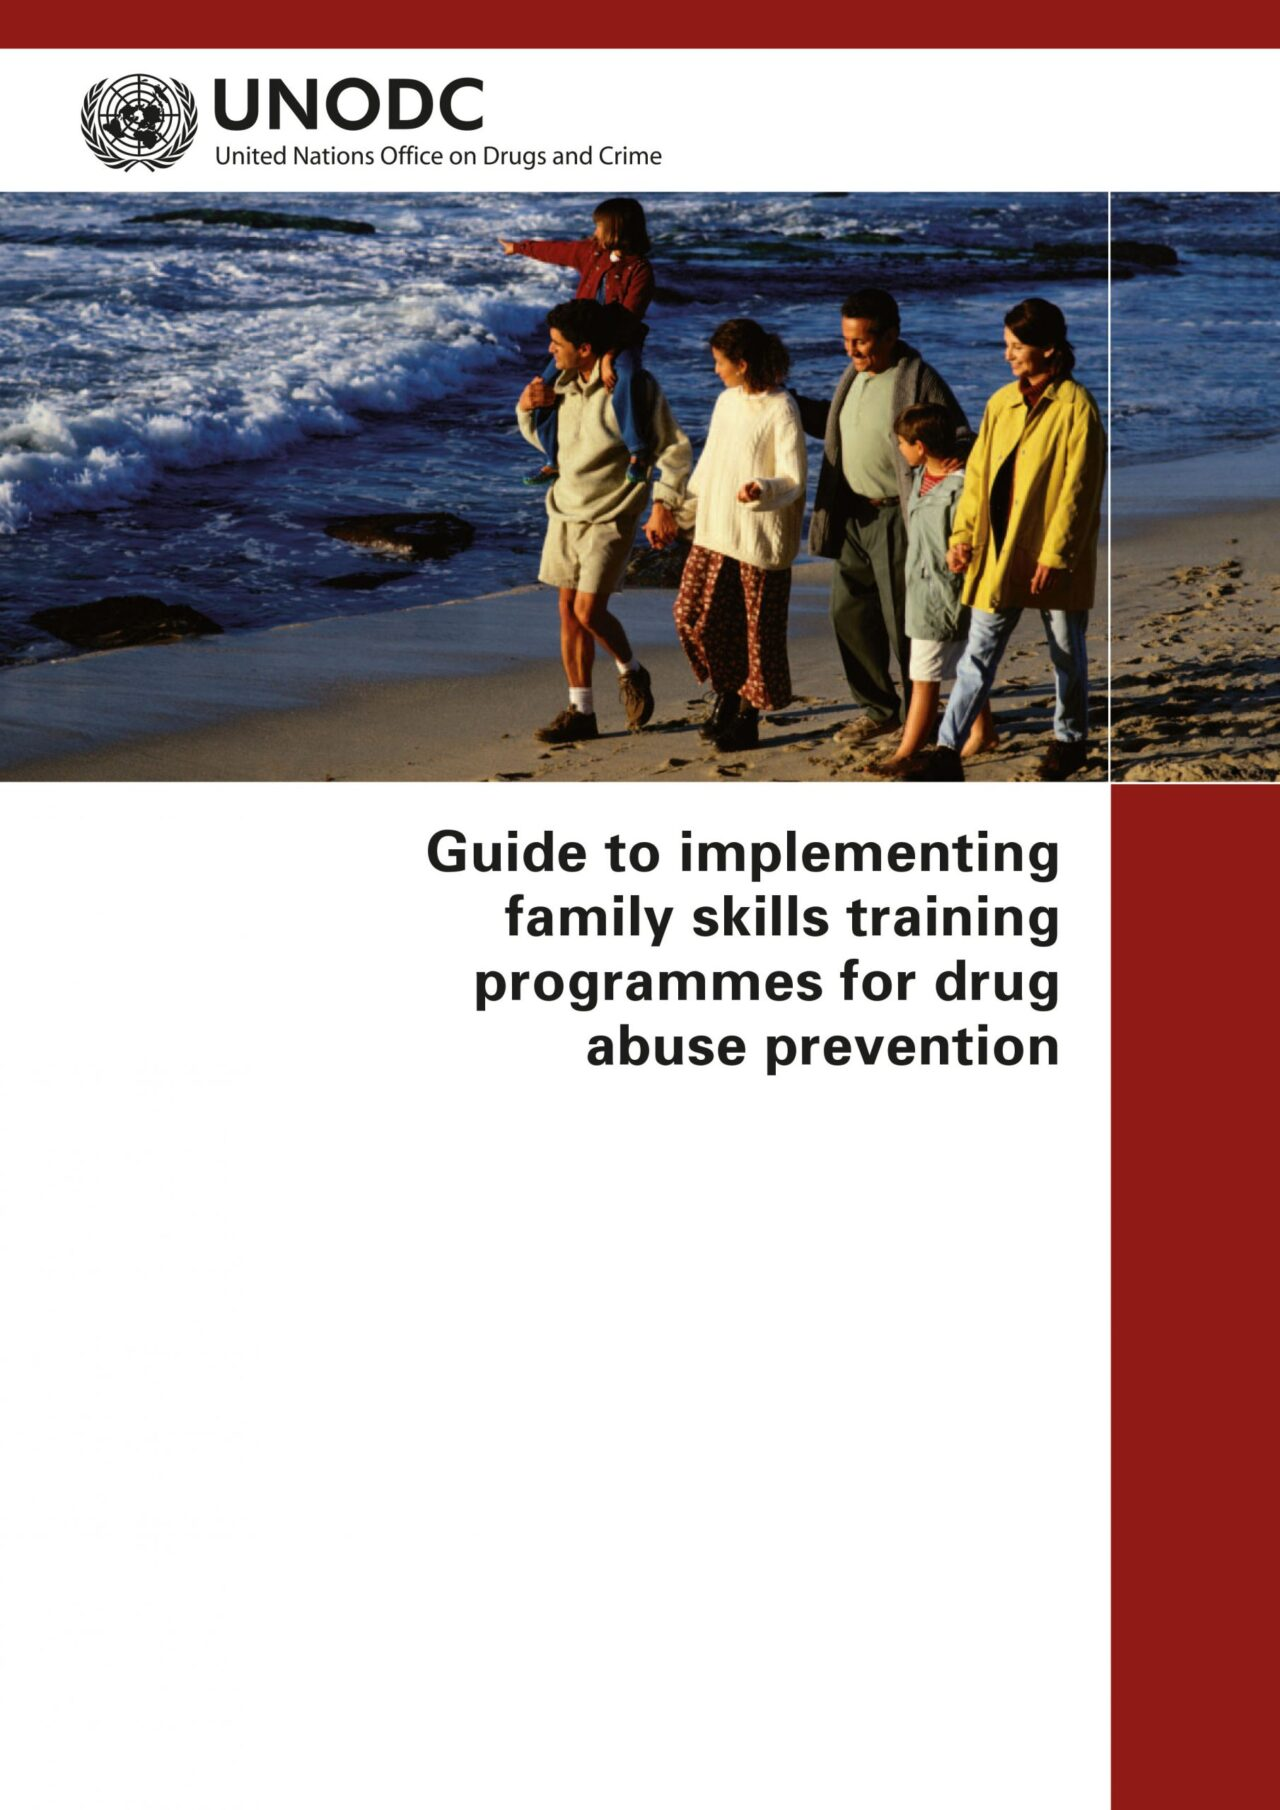 Guide to implementing family skills training programmes for drug